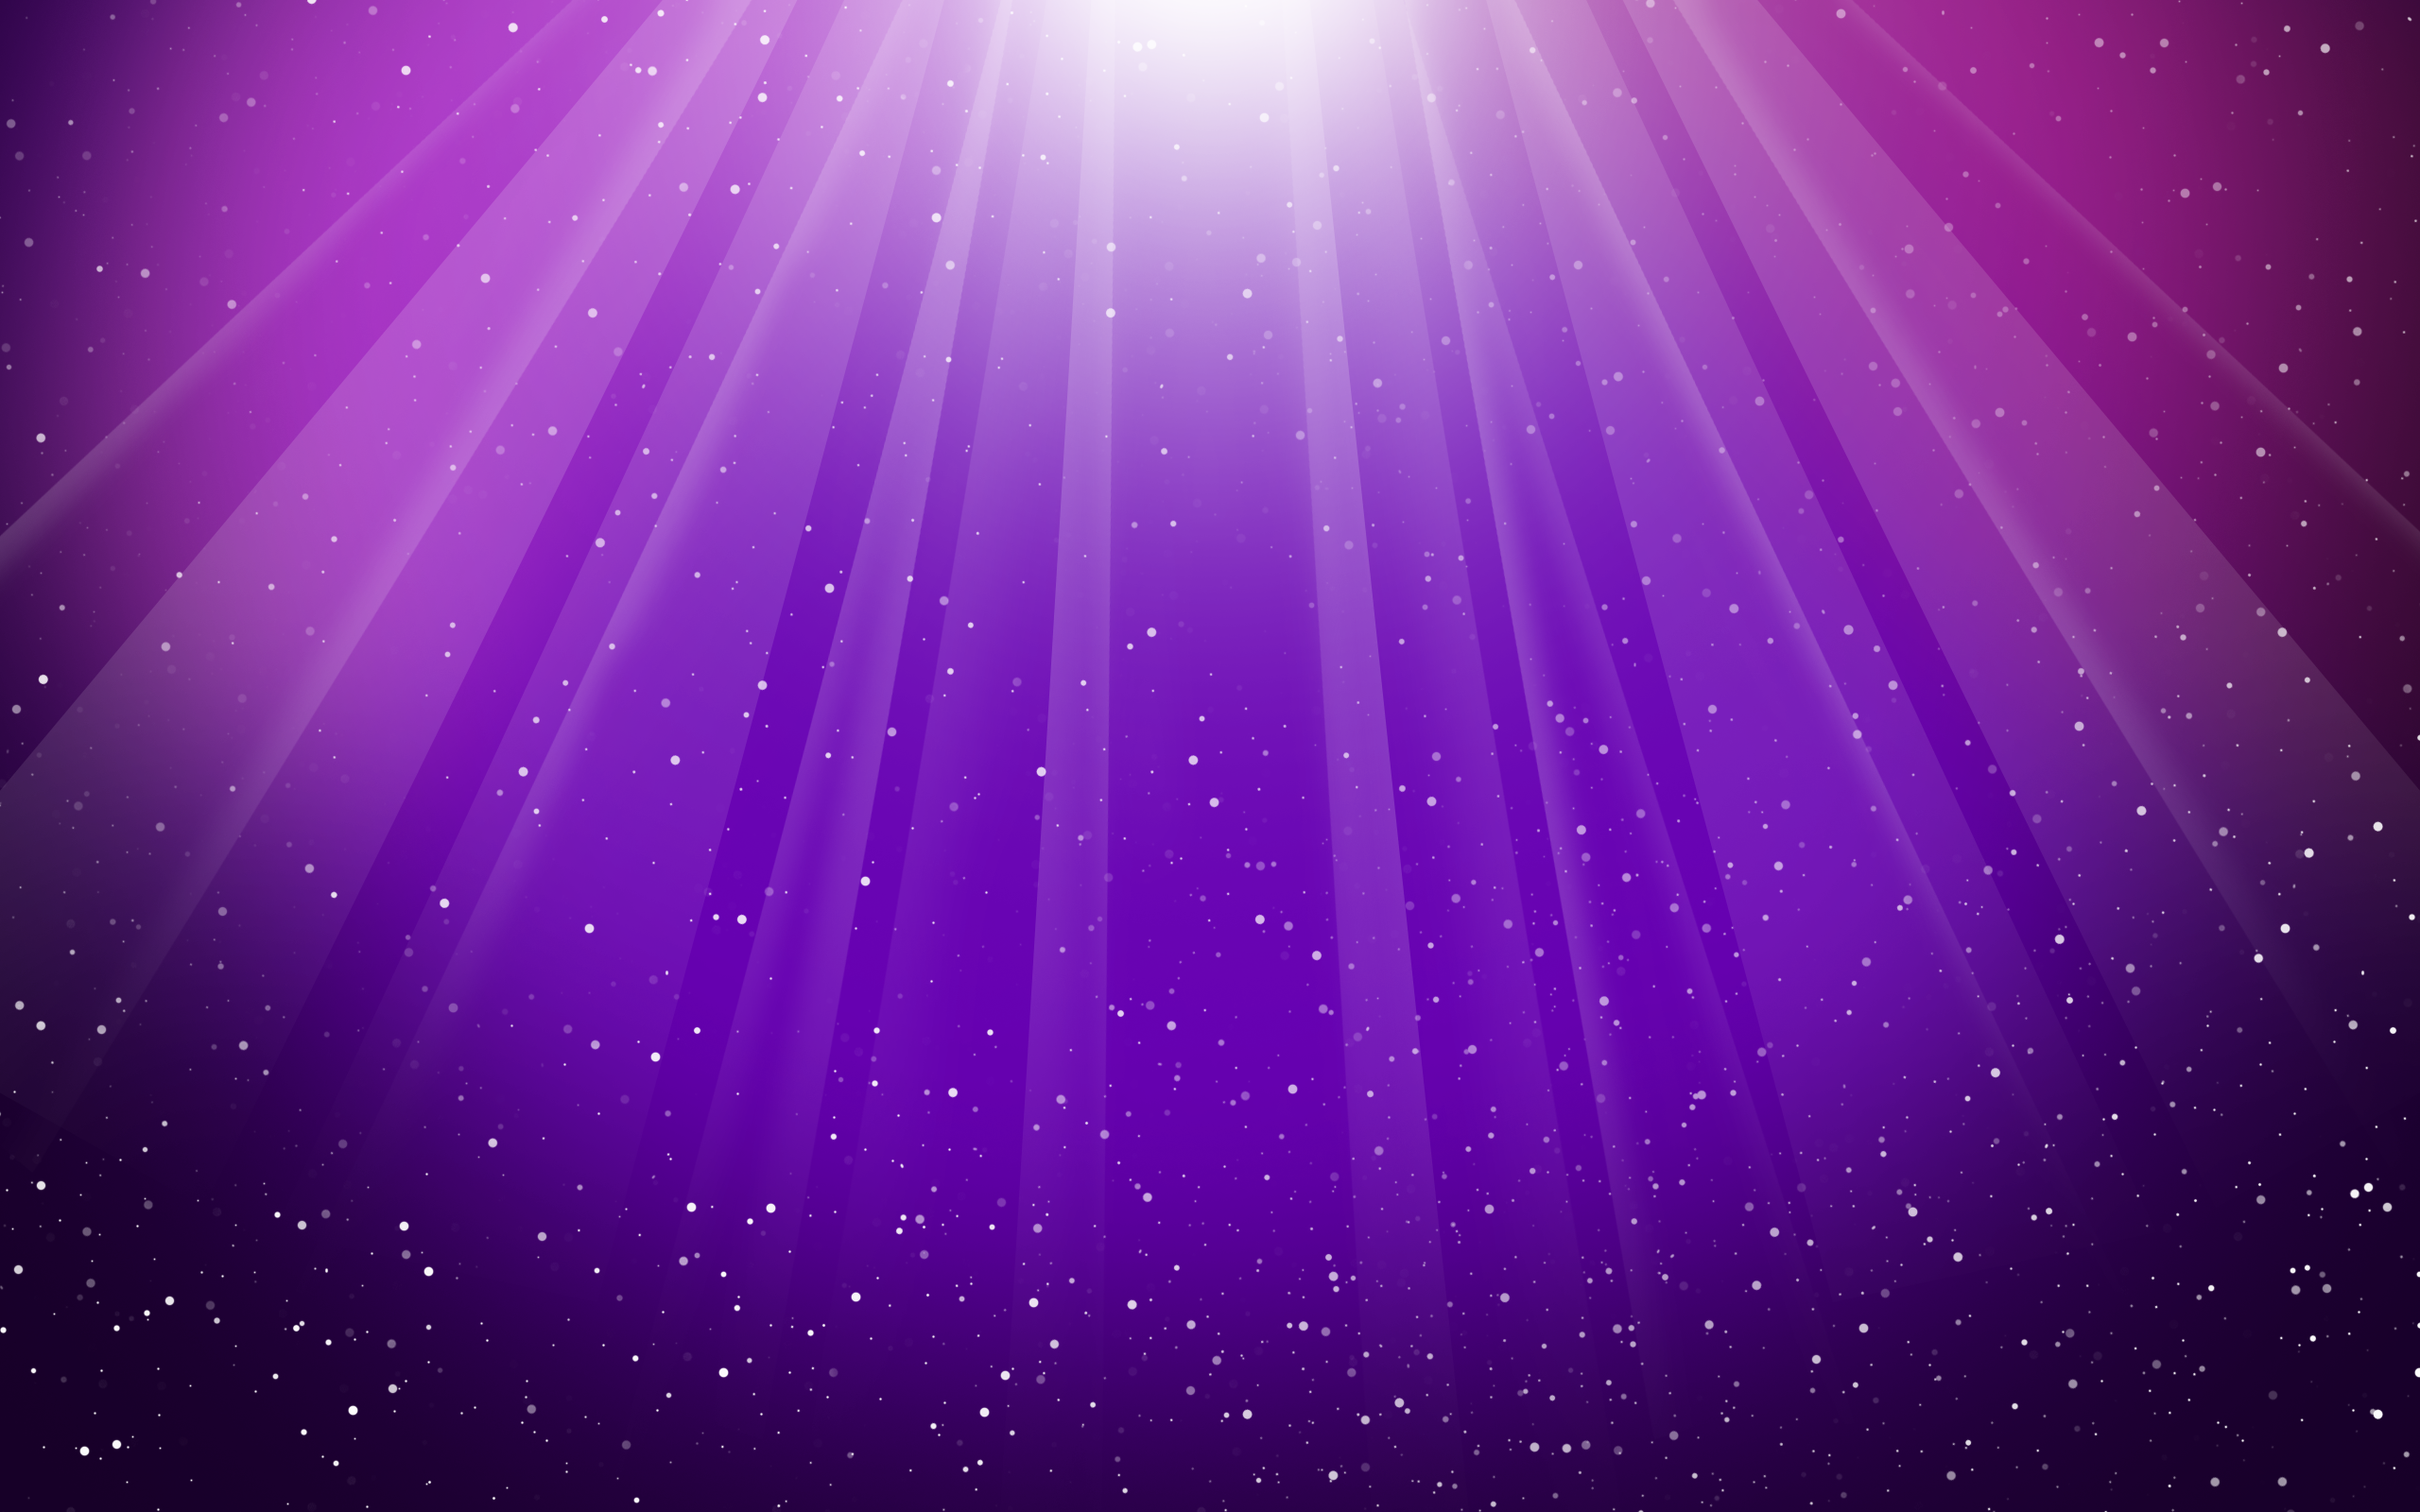 amazing solar system backgrounds in purple - photo #32